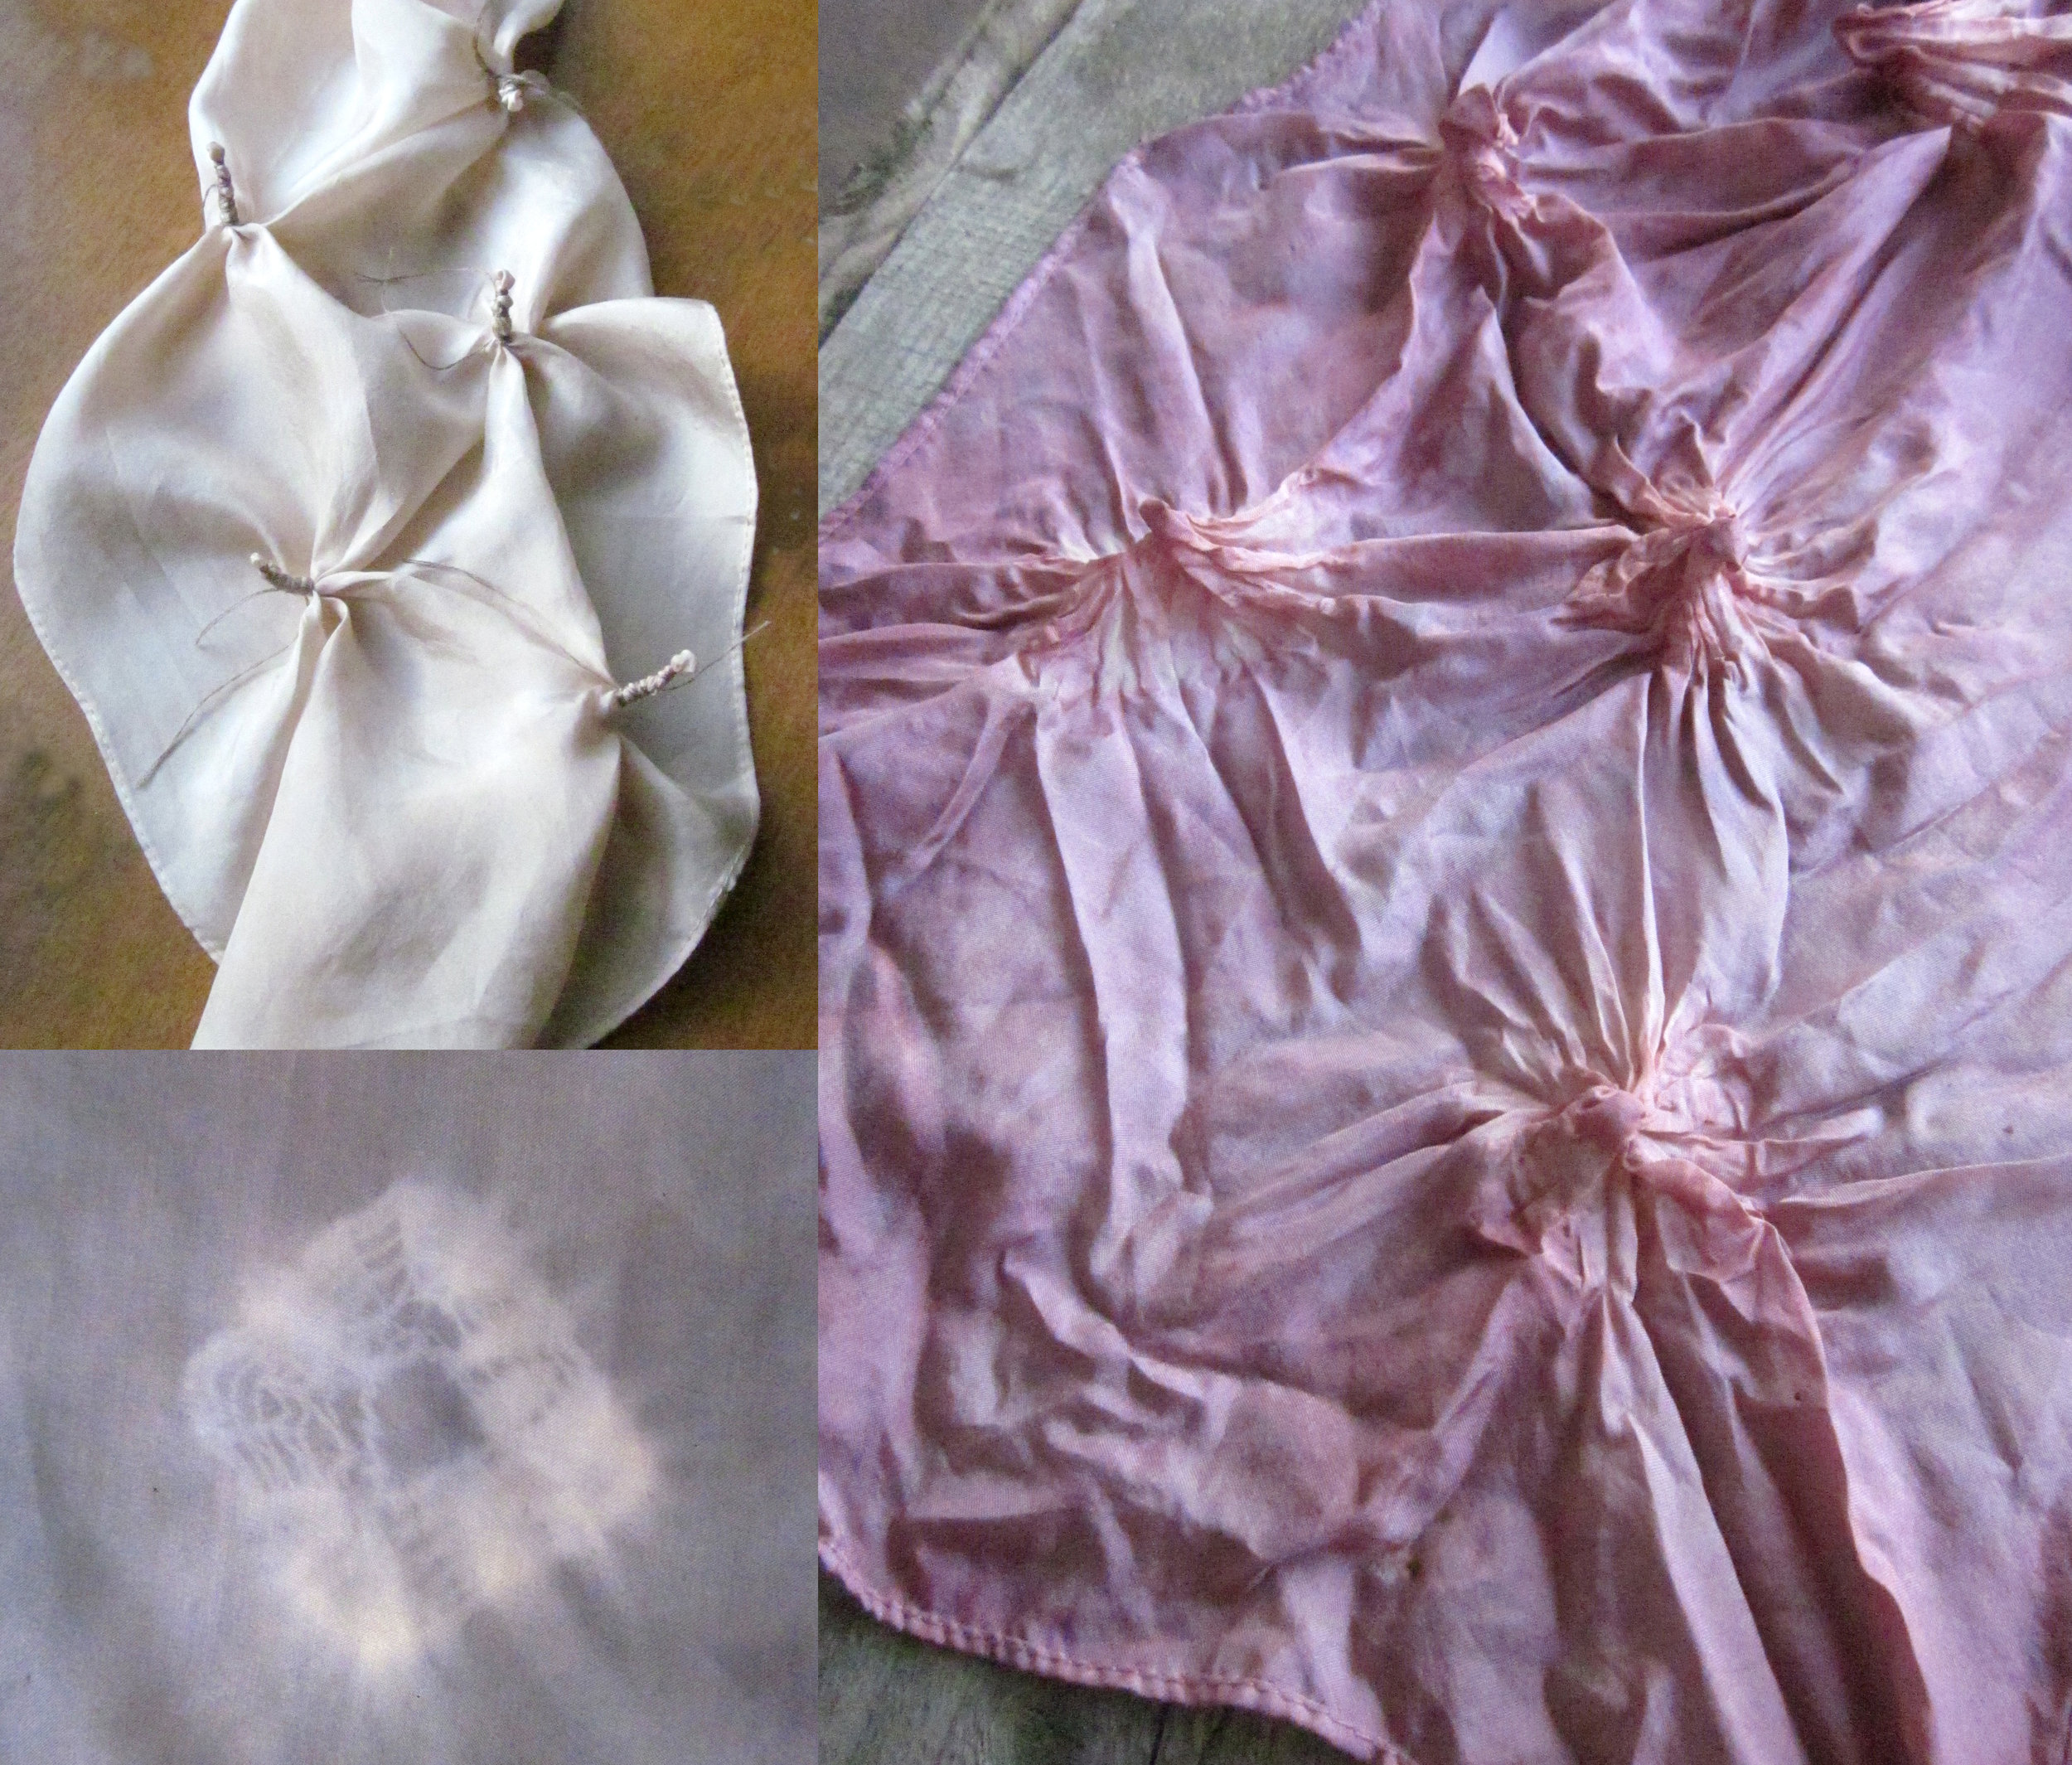 One example of shibori resist - small areas of the fabric are tightly twisted and bound.